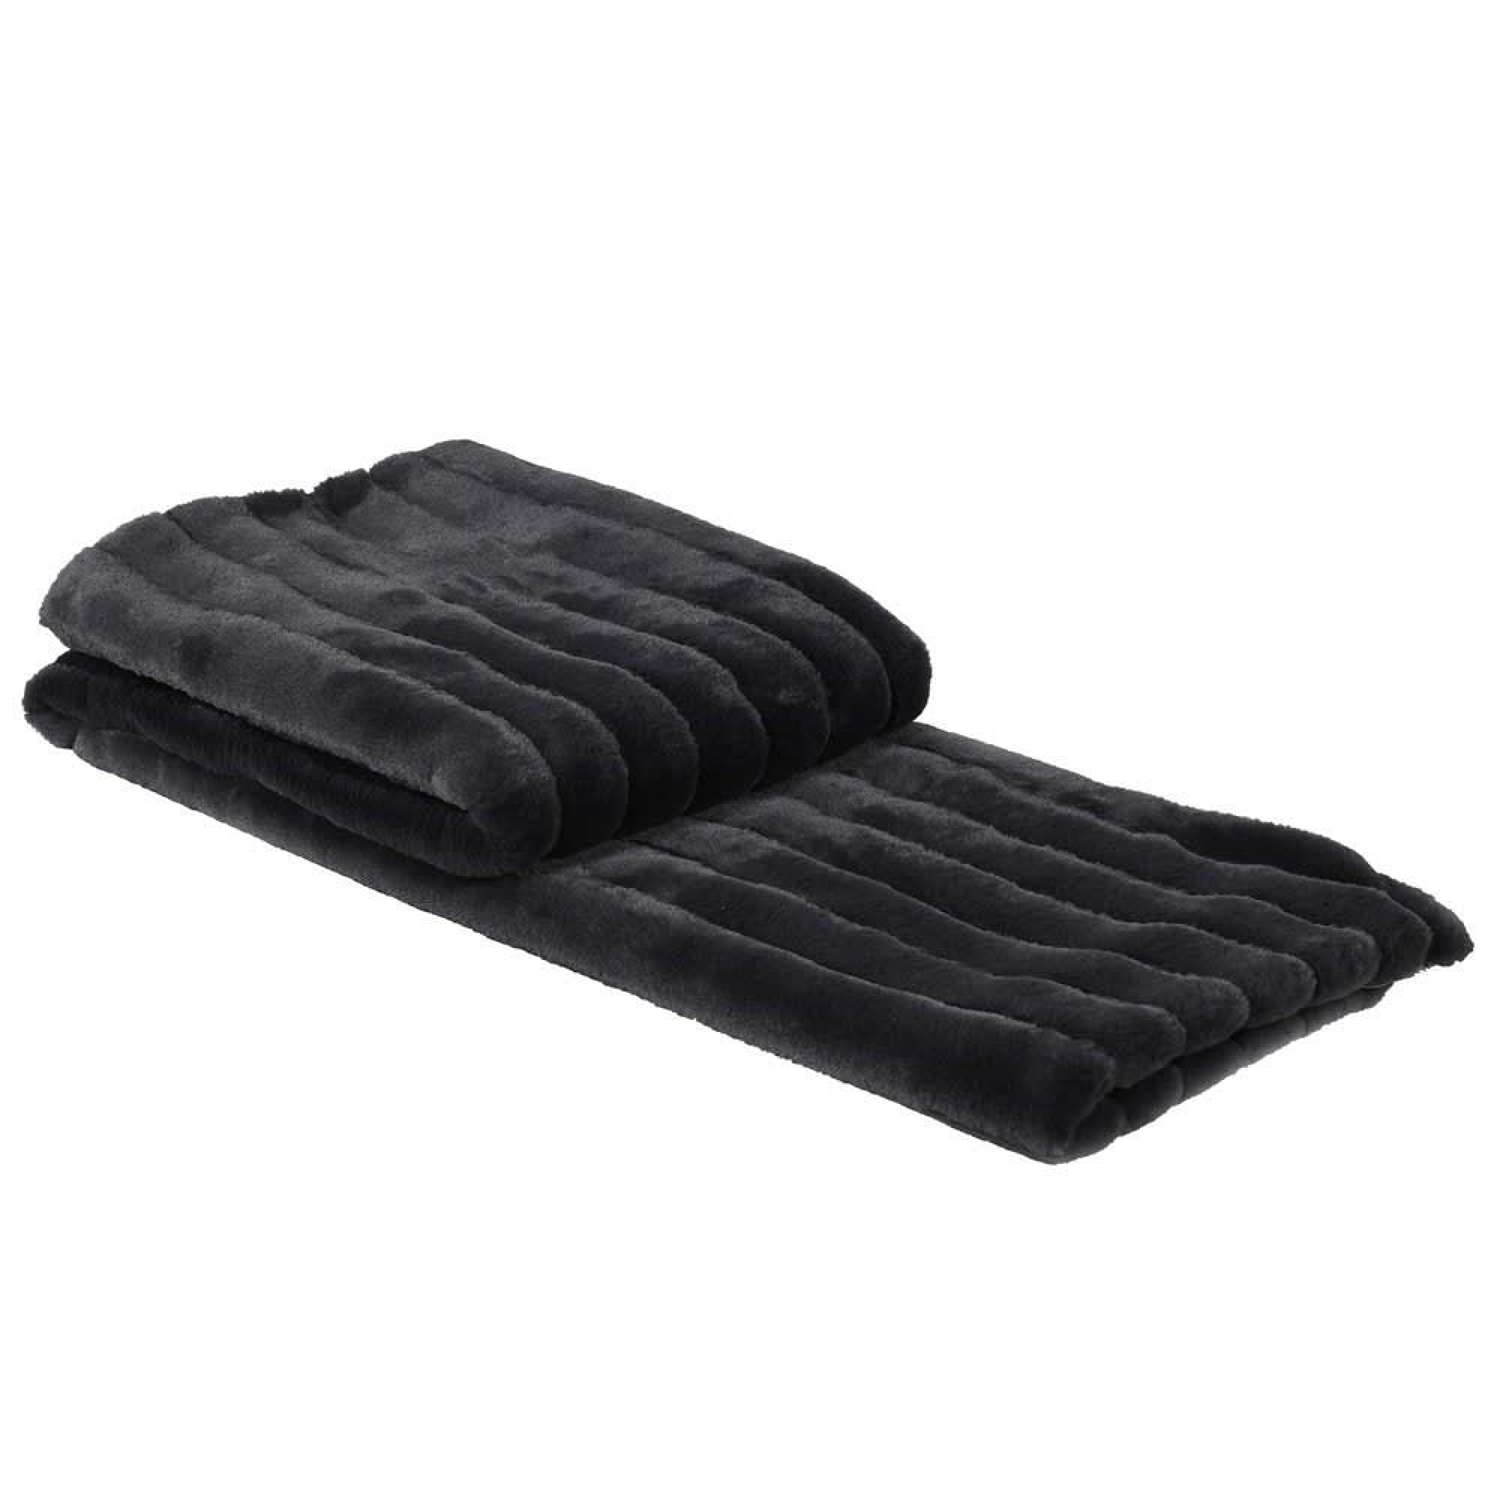 Deep Slate Coloured Faux Fur Throw - Channel Design